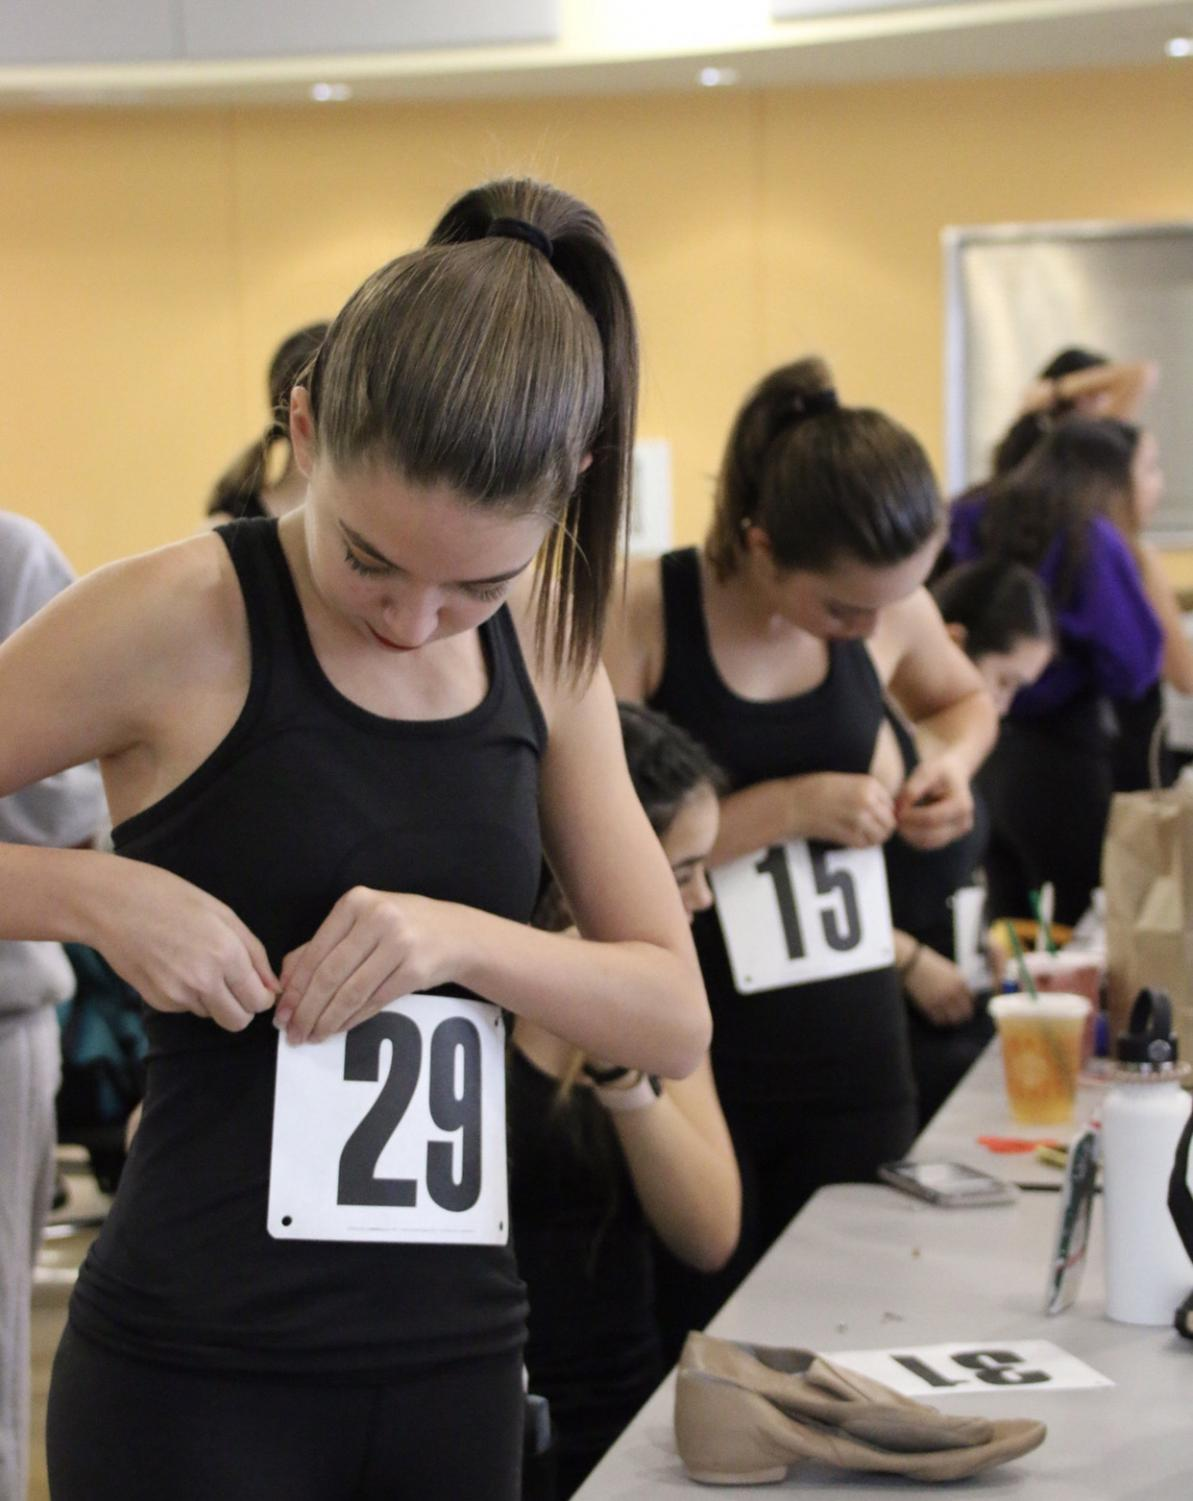 Contestants fasten their contestant numbers